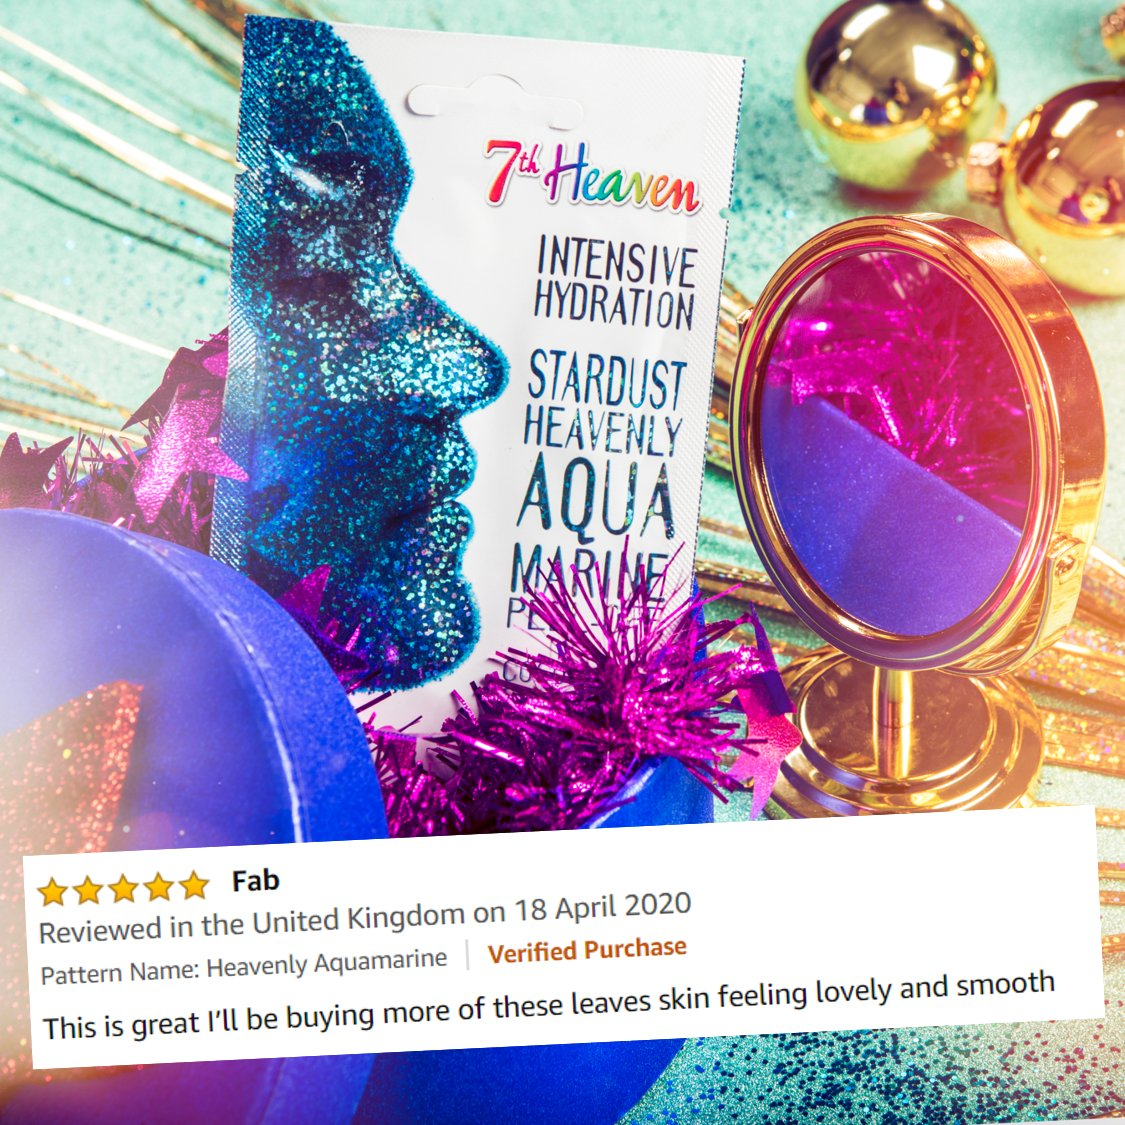 Our Heavenly Aqua Marine Stardust mask is a literal god send. Don't just take our word for it, check out our reviews! Pick up the Stardust bundle at @AmazonUK  if you fancy some sparkly, coconutty, peely goodness too! https://t.co/Ev7wgraviN